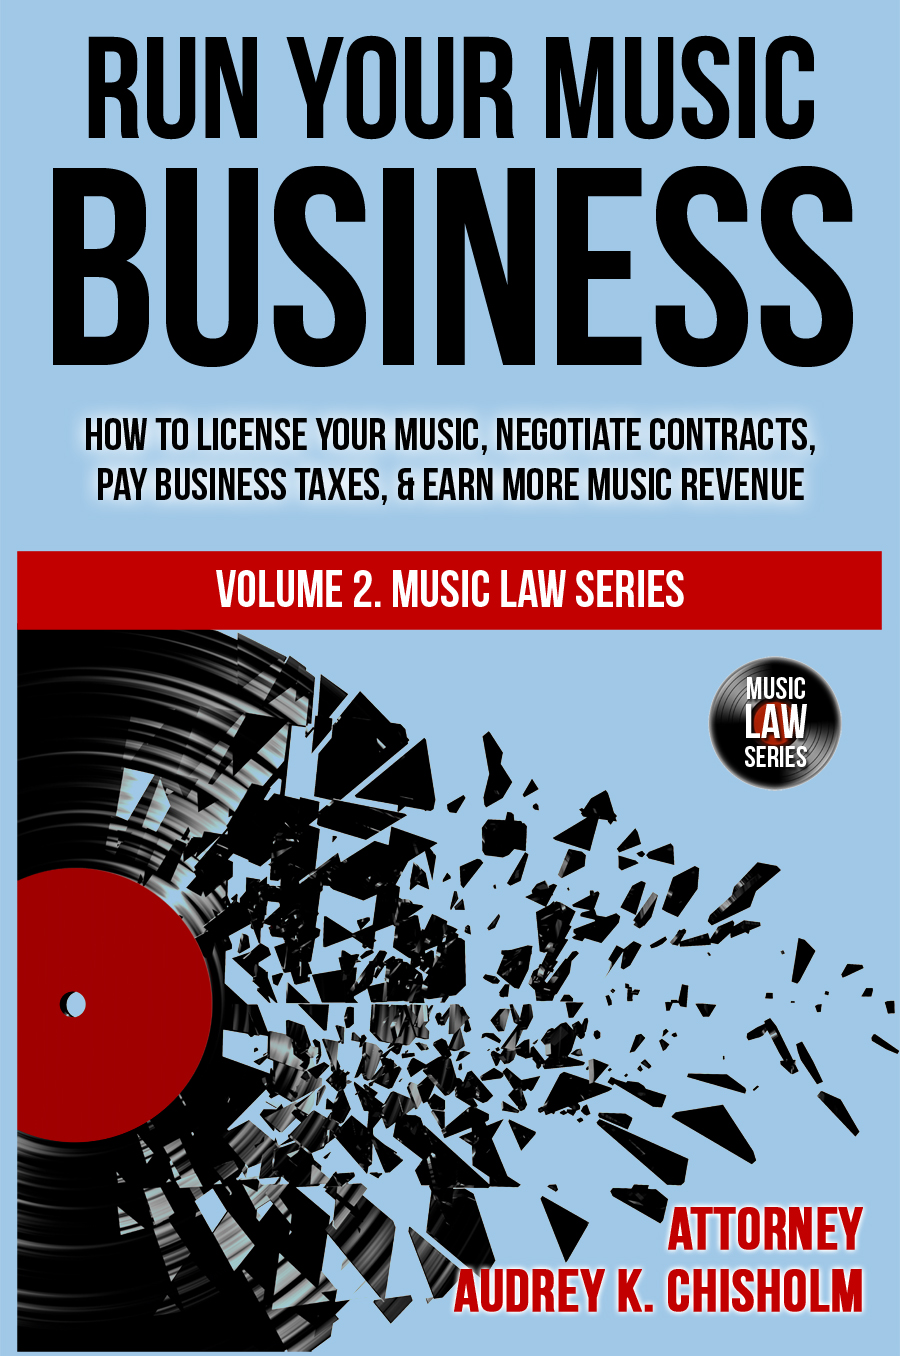 Run Your Music Business